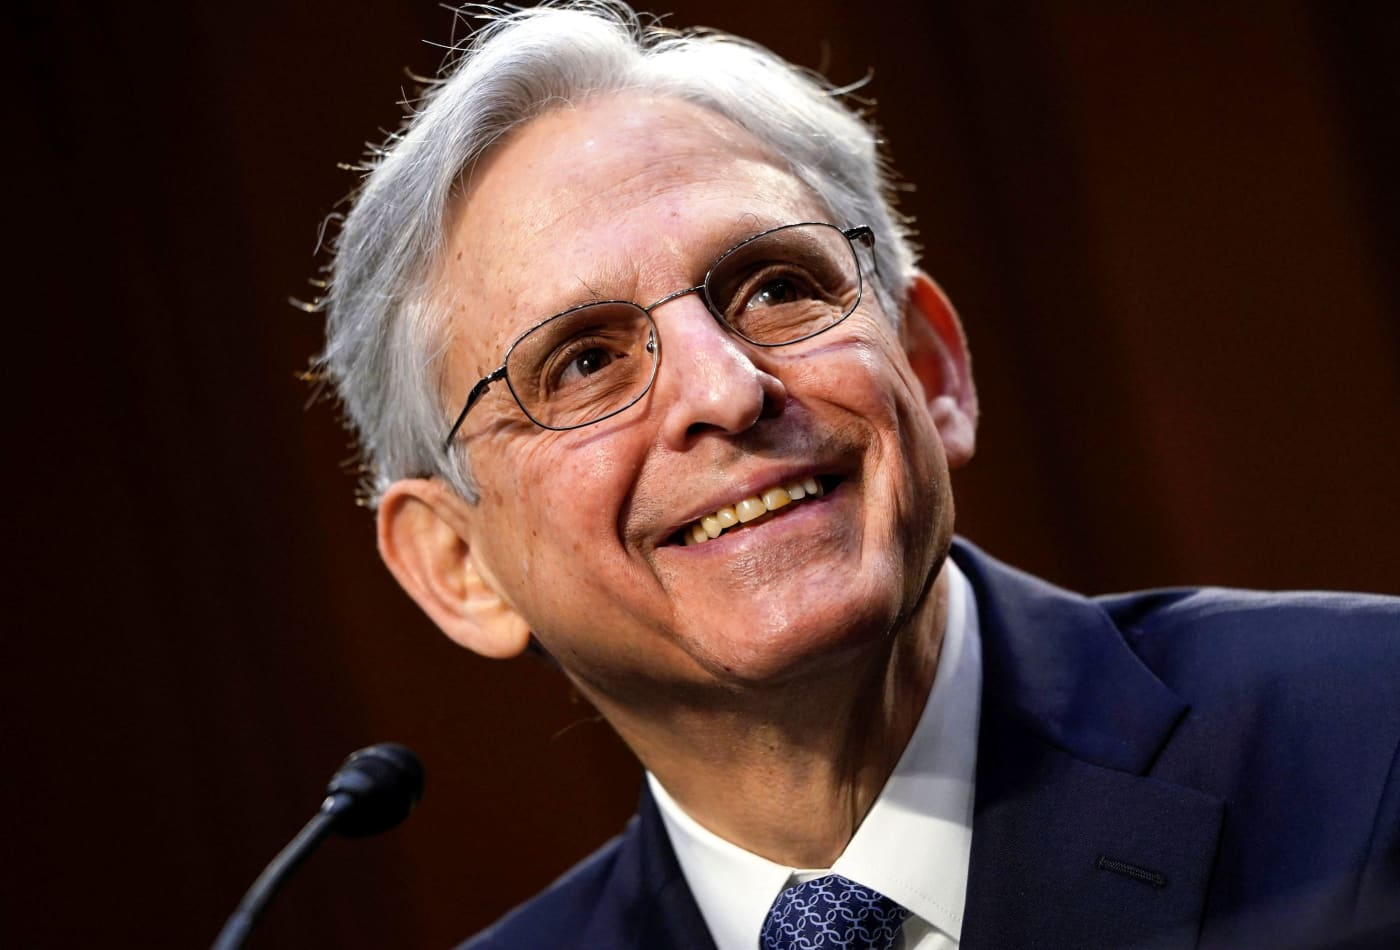 Merrick Garland's nomination to be attorney general advances to full Senate